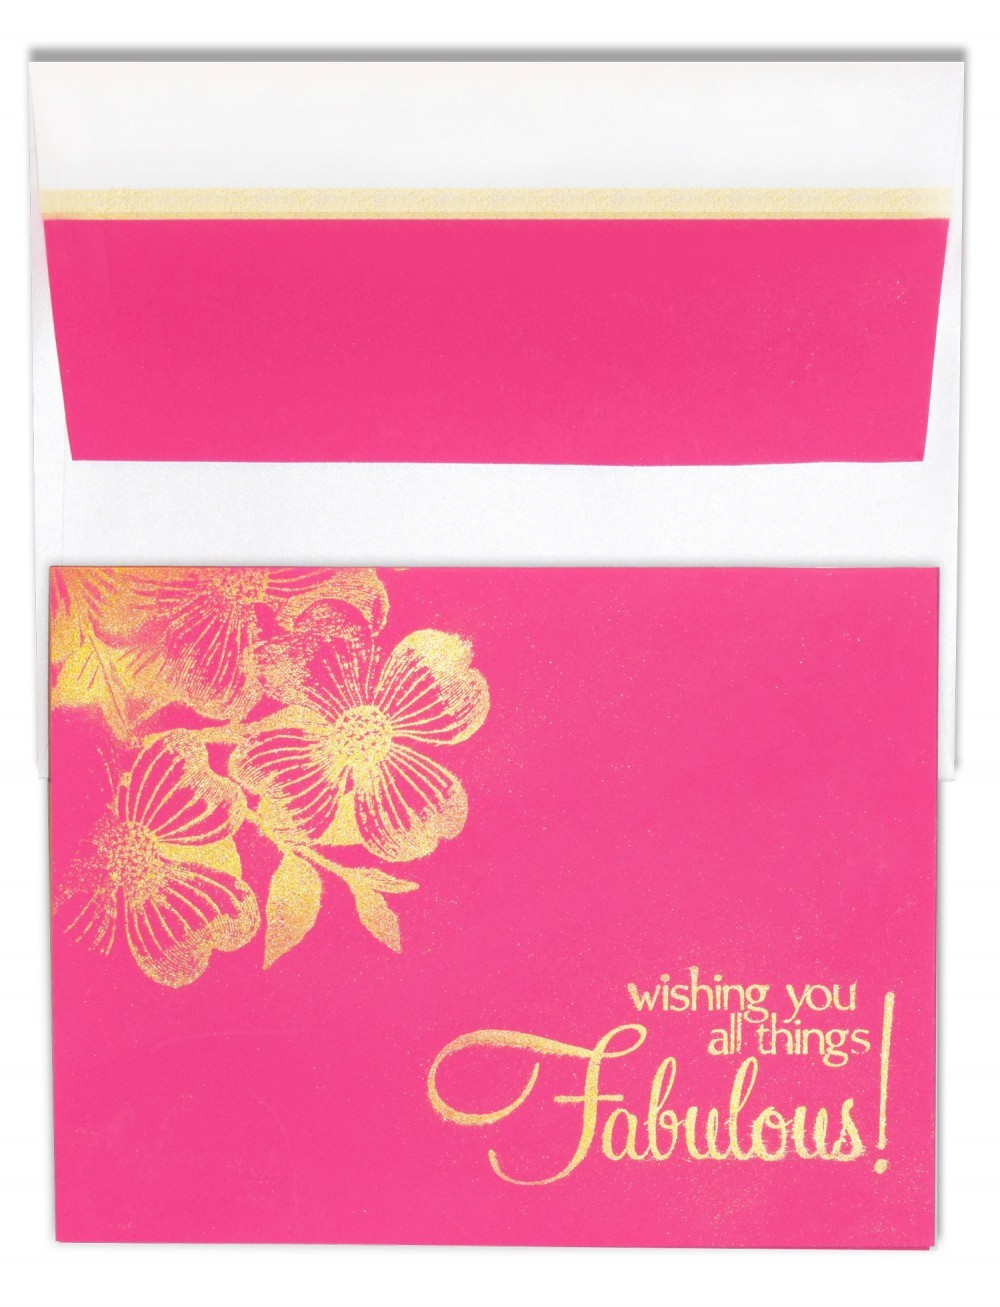 make a fabulous card with something curiously pink - PinkFabCard e1451366550445 - Make a fabulous card with something curiously pink